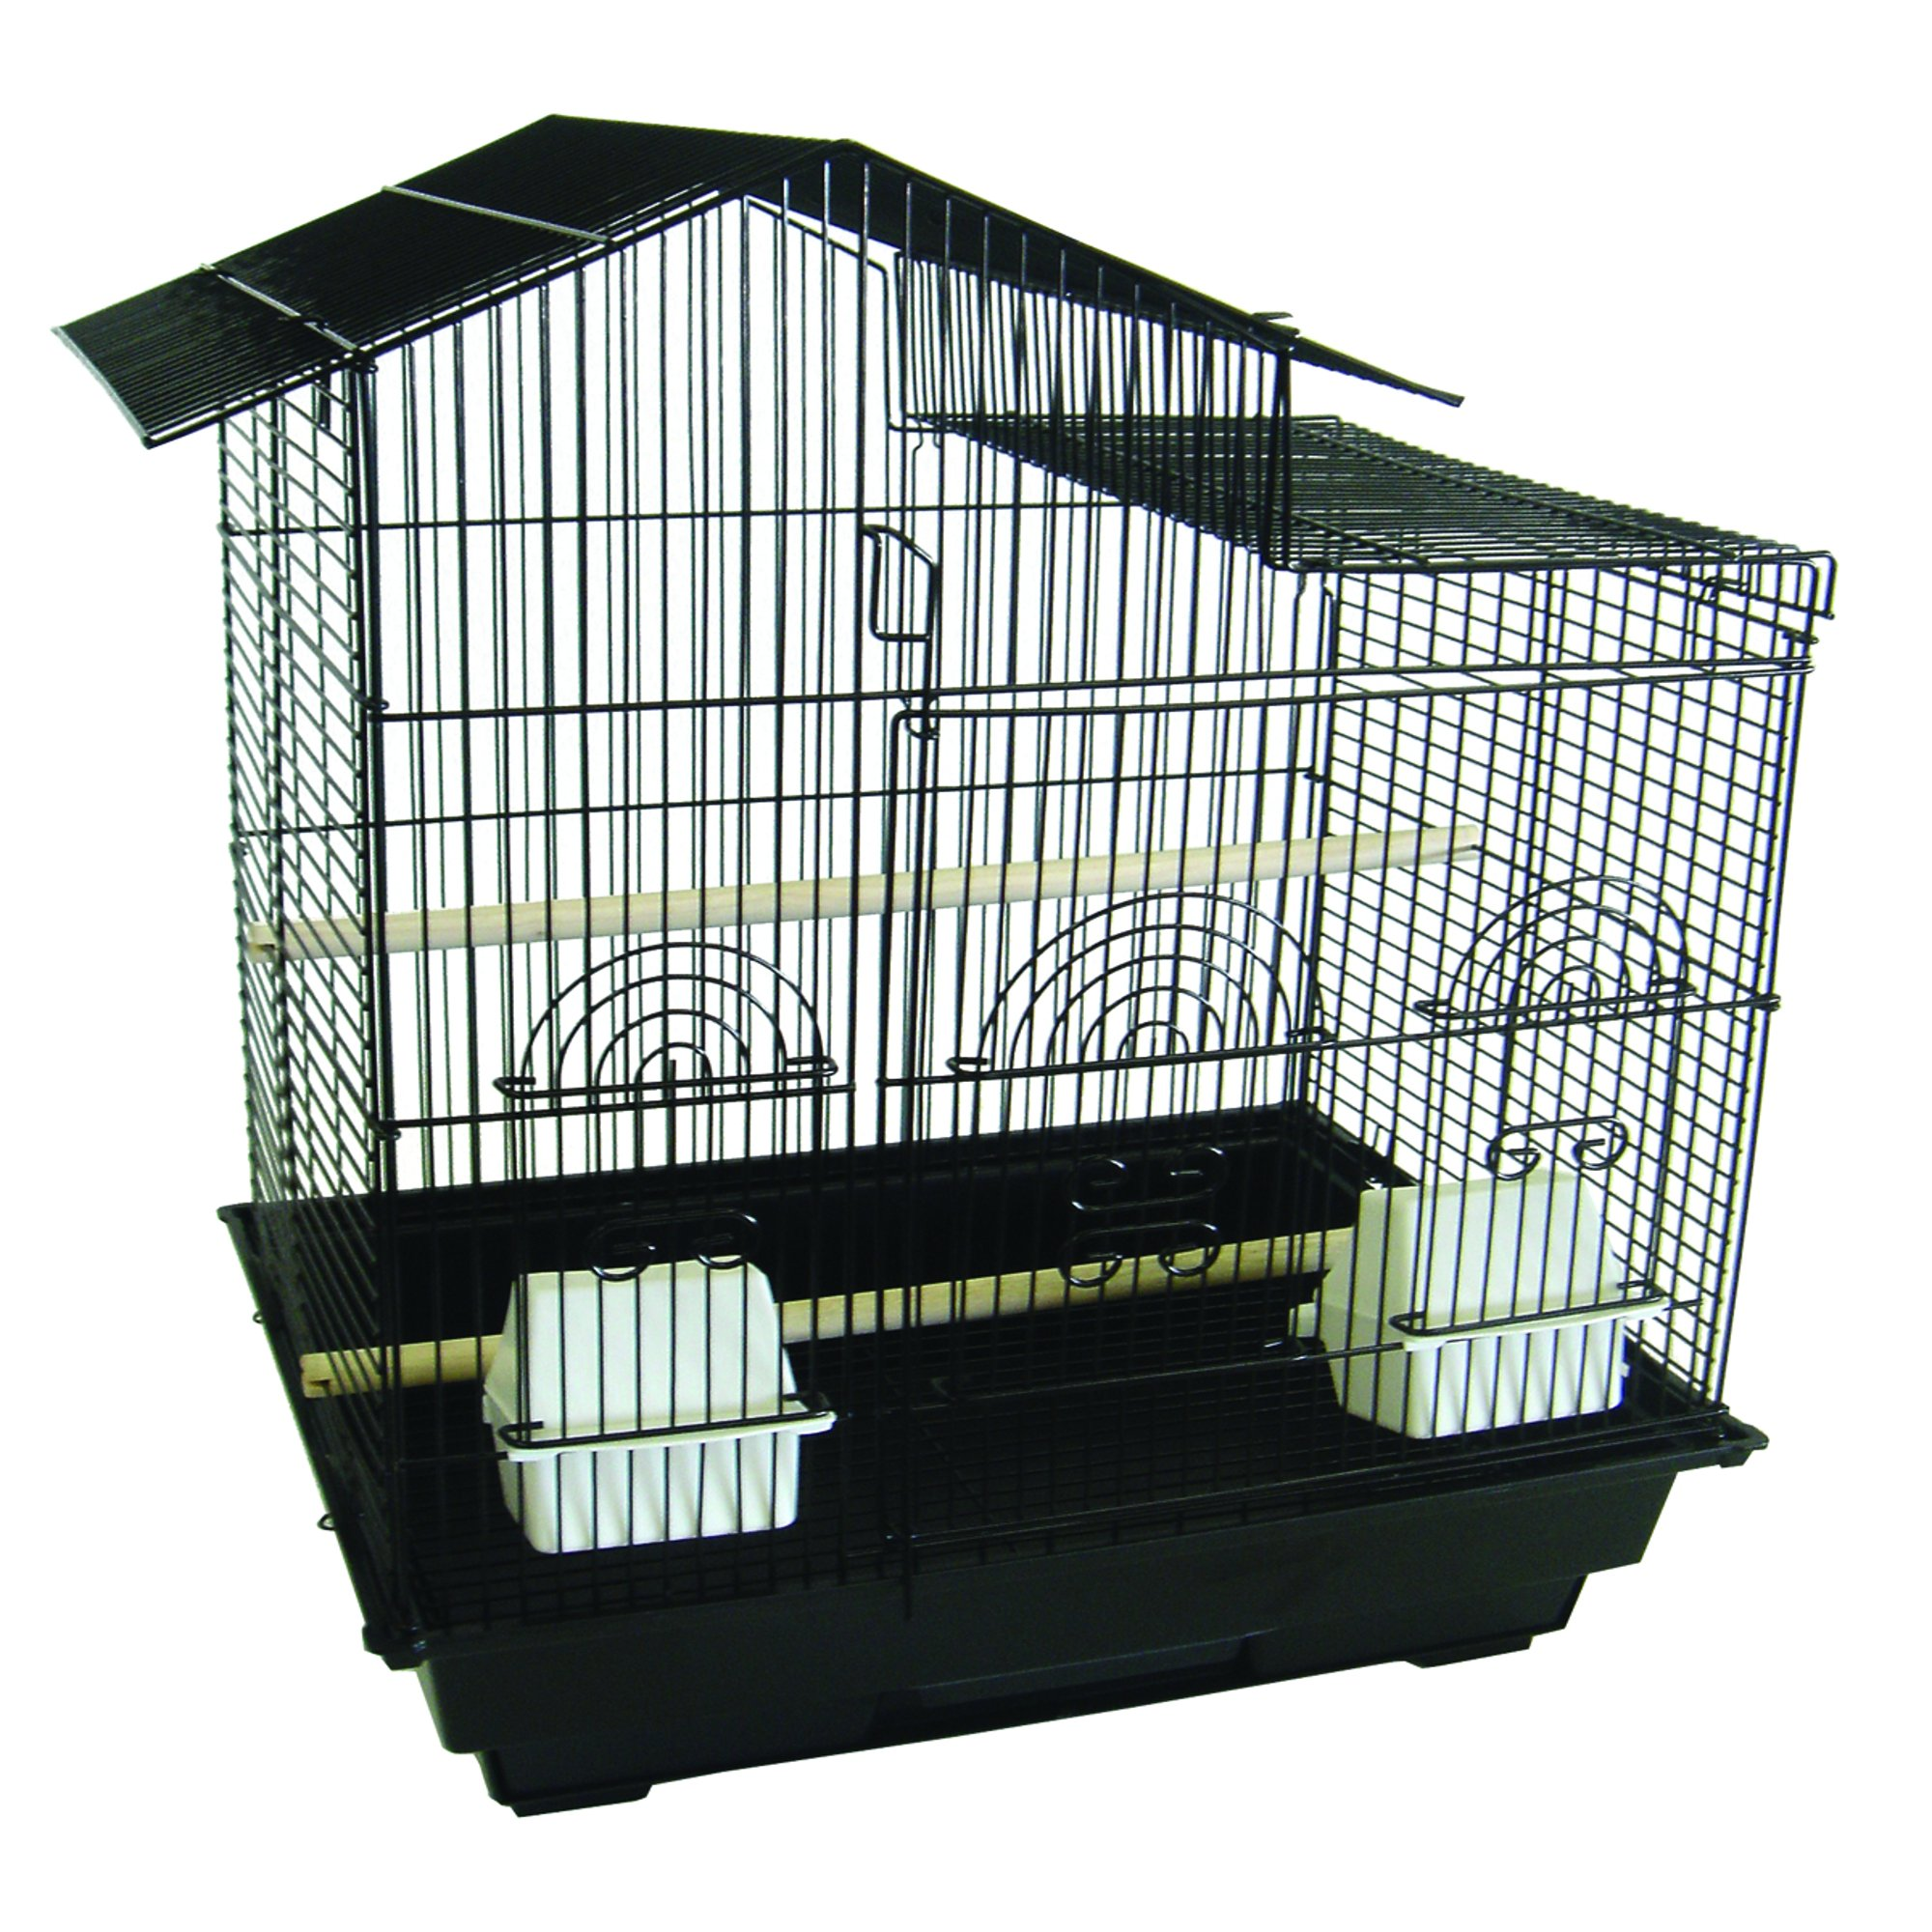 Bird Cage Stand Petco. The Petco Bird Cage best sellers include Vision bird cage model m02, Petco brown wood perches birds and Petco designer green ranch parakeet cage.